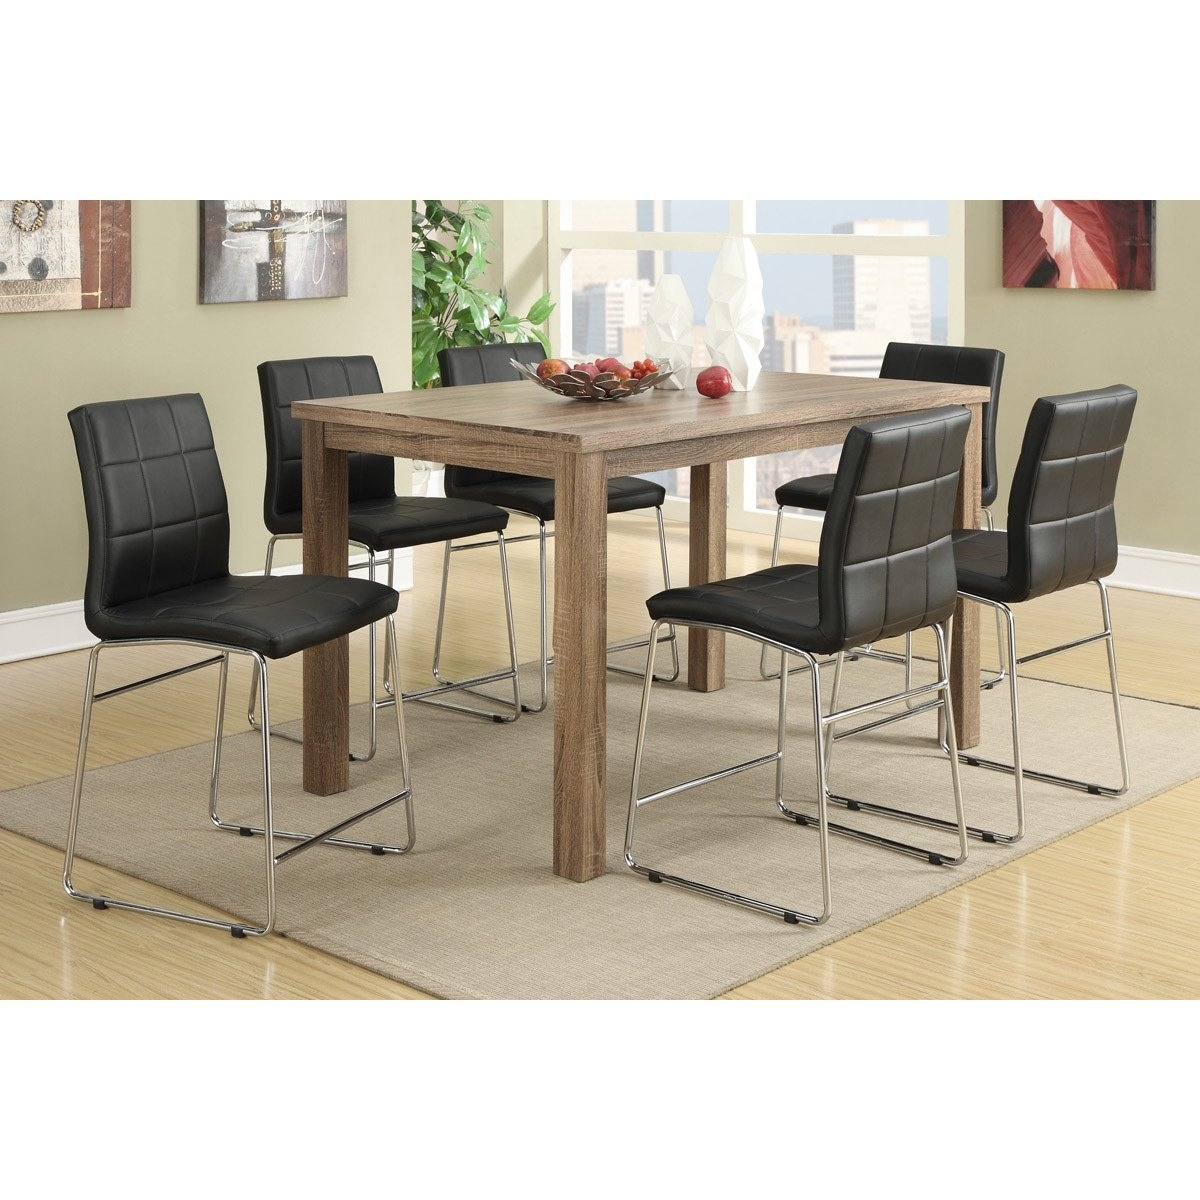 Shop Chandler 7 Piece Counter Height Dining Set – Free Shipping Pertaining To Most Current Chandler 7 Piece Extension Dining Sets With Wood Side Chairs (Image 20 of 20)